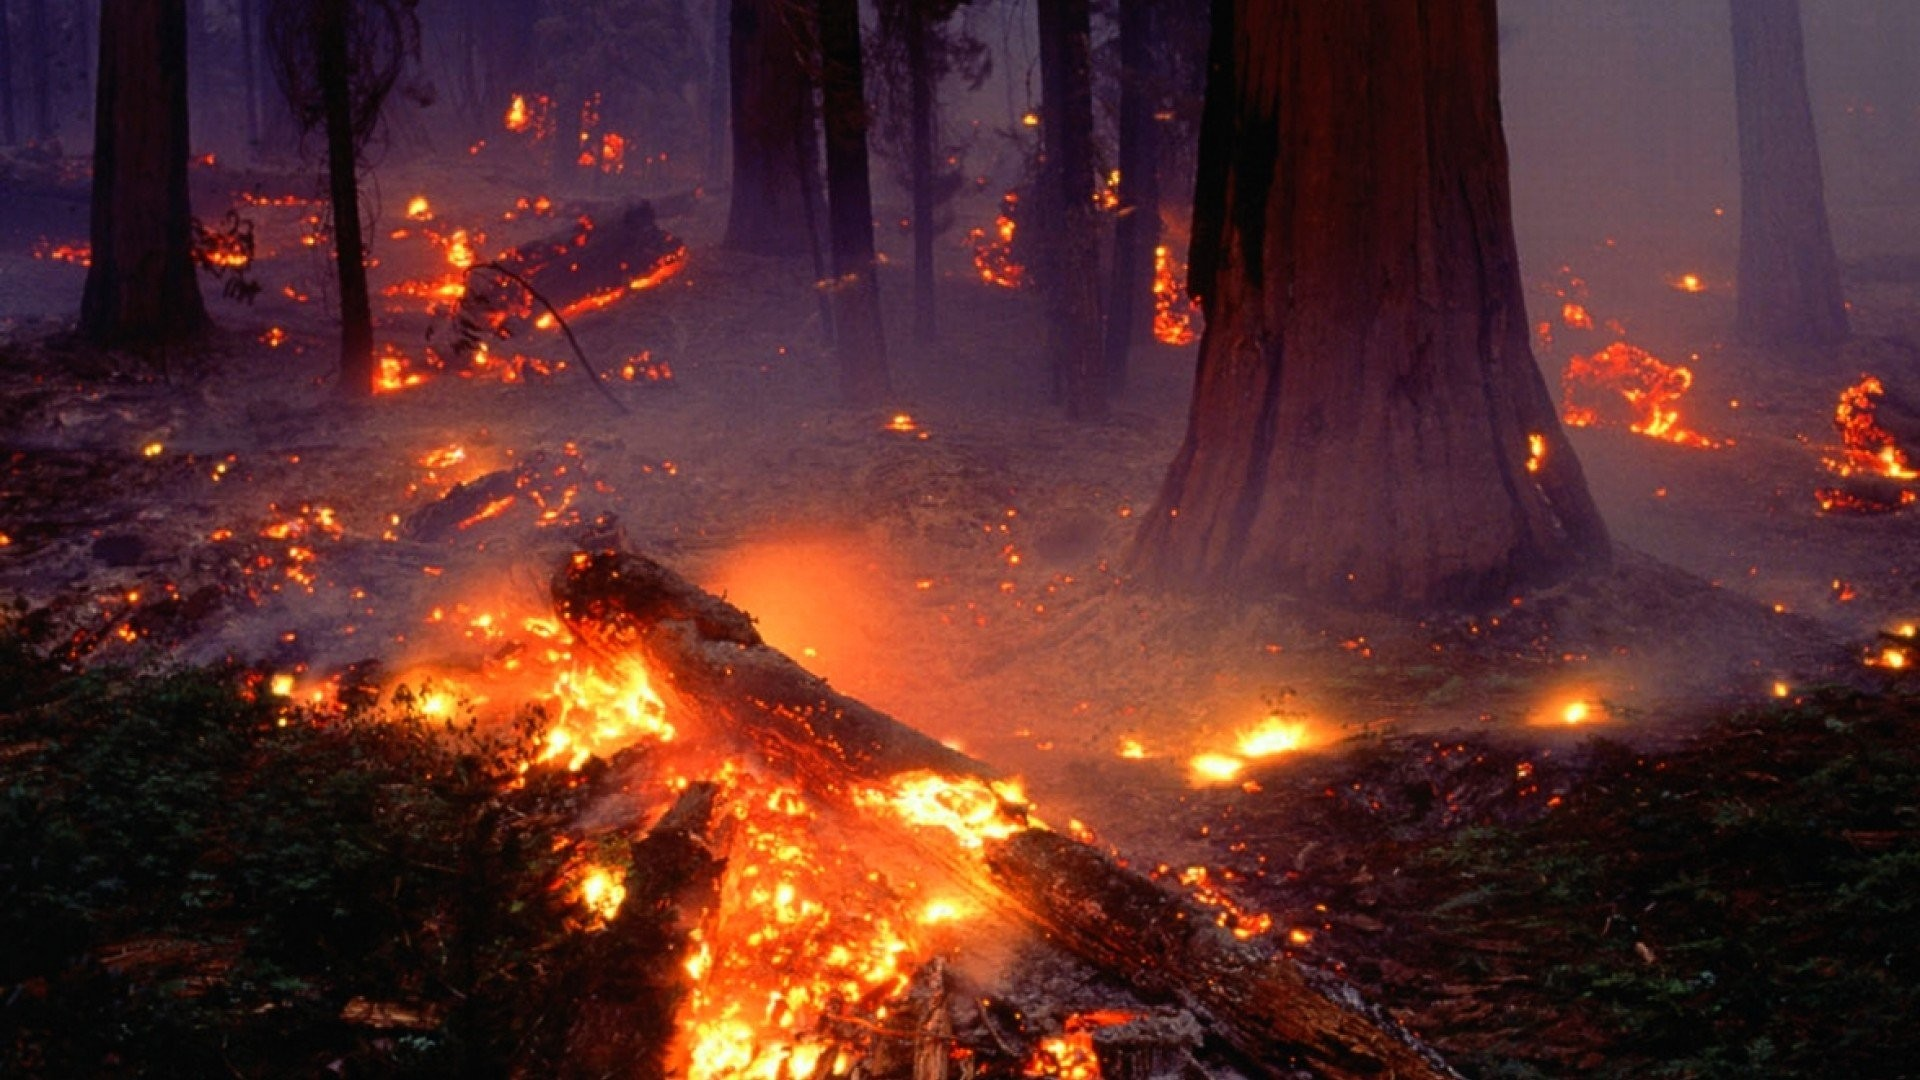 1920x1080 Forest Fire Flames Tree Disaster Apocalyptic 23 Wallpaper